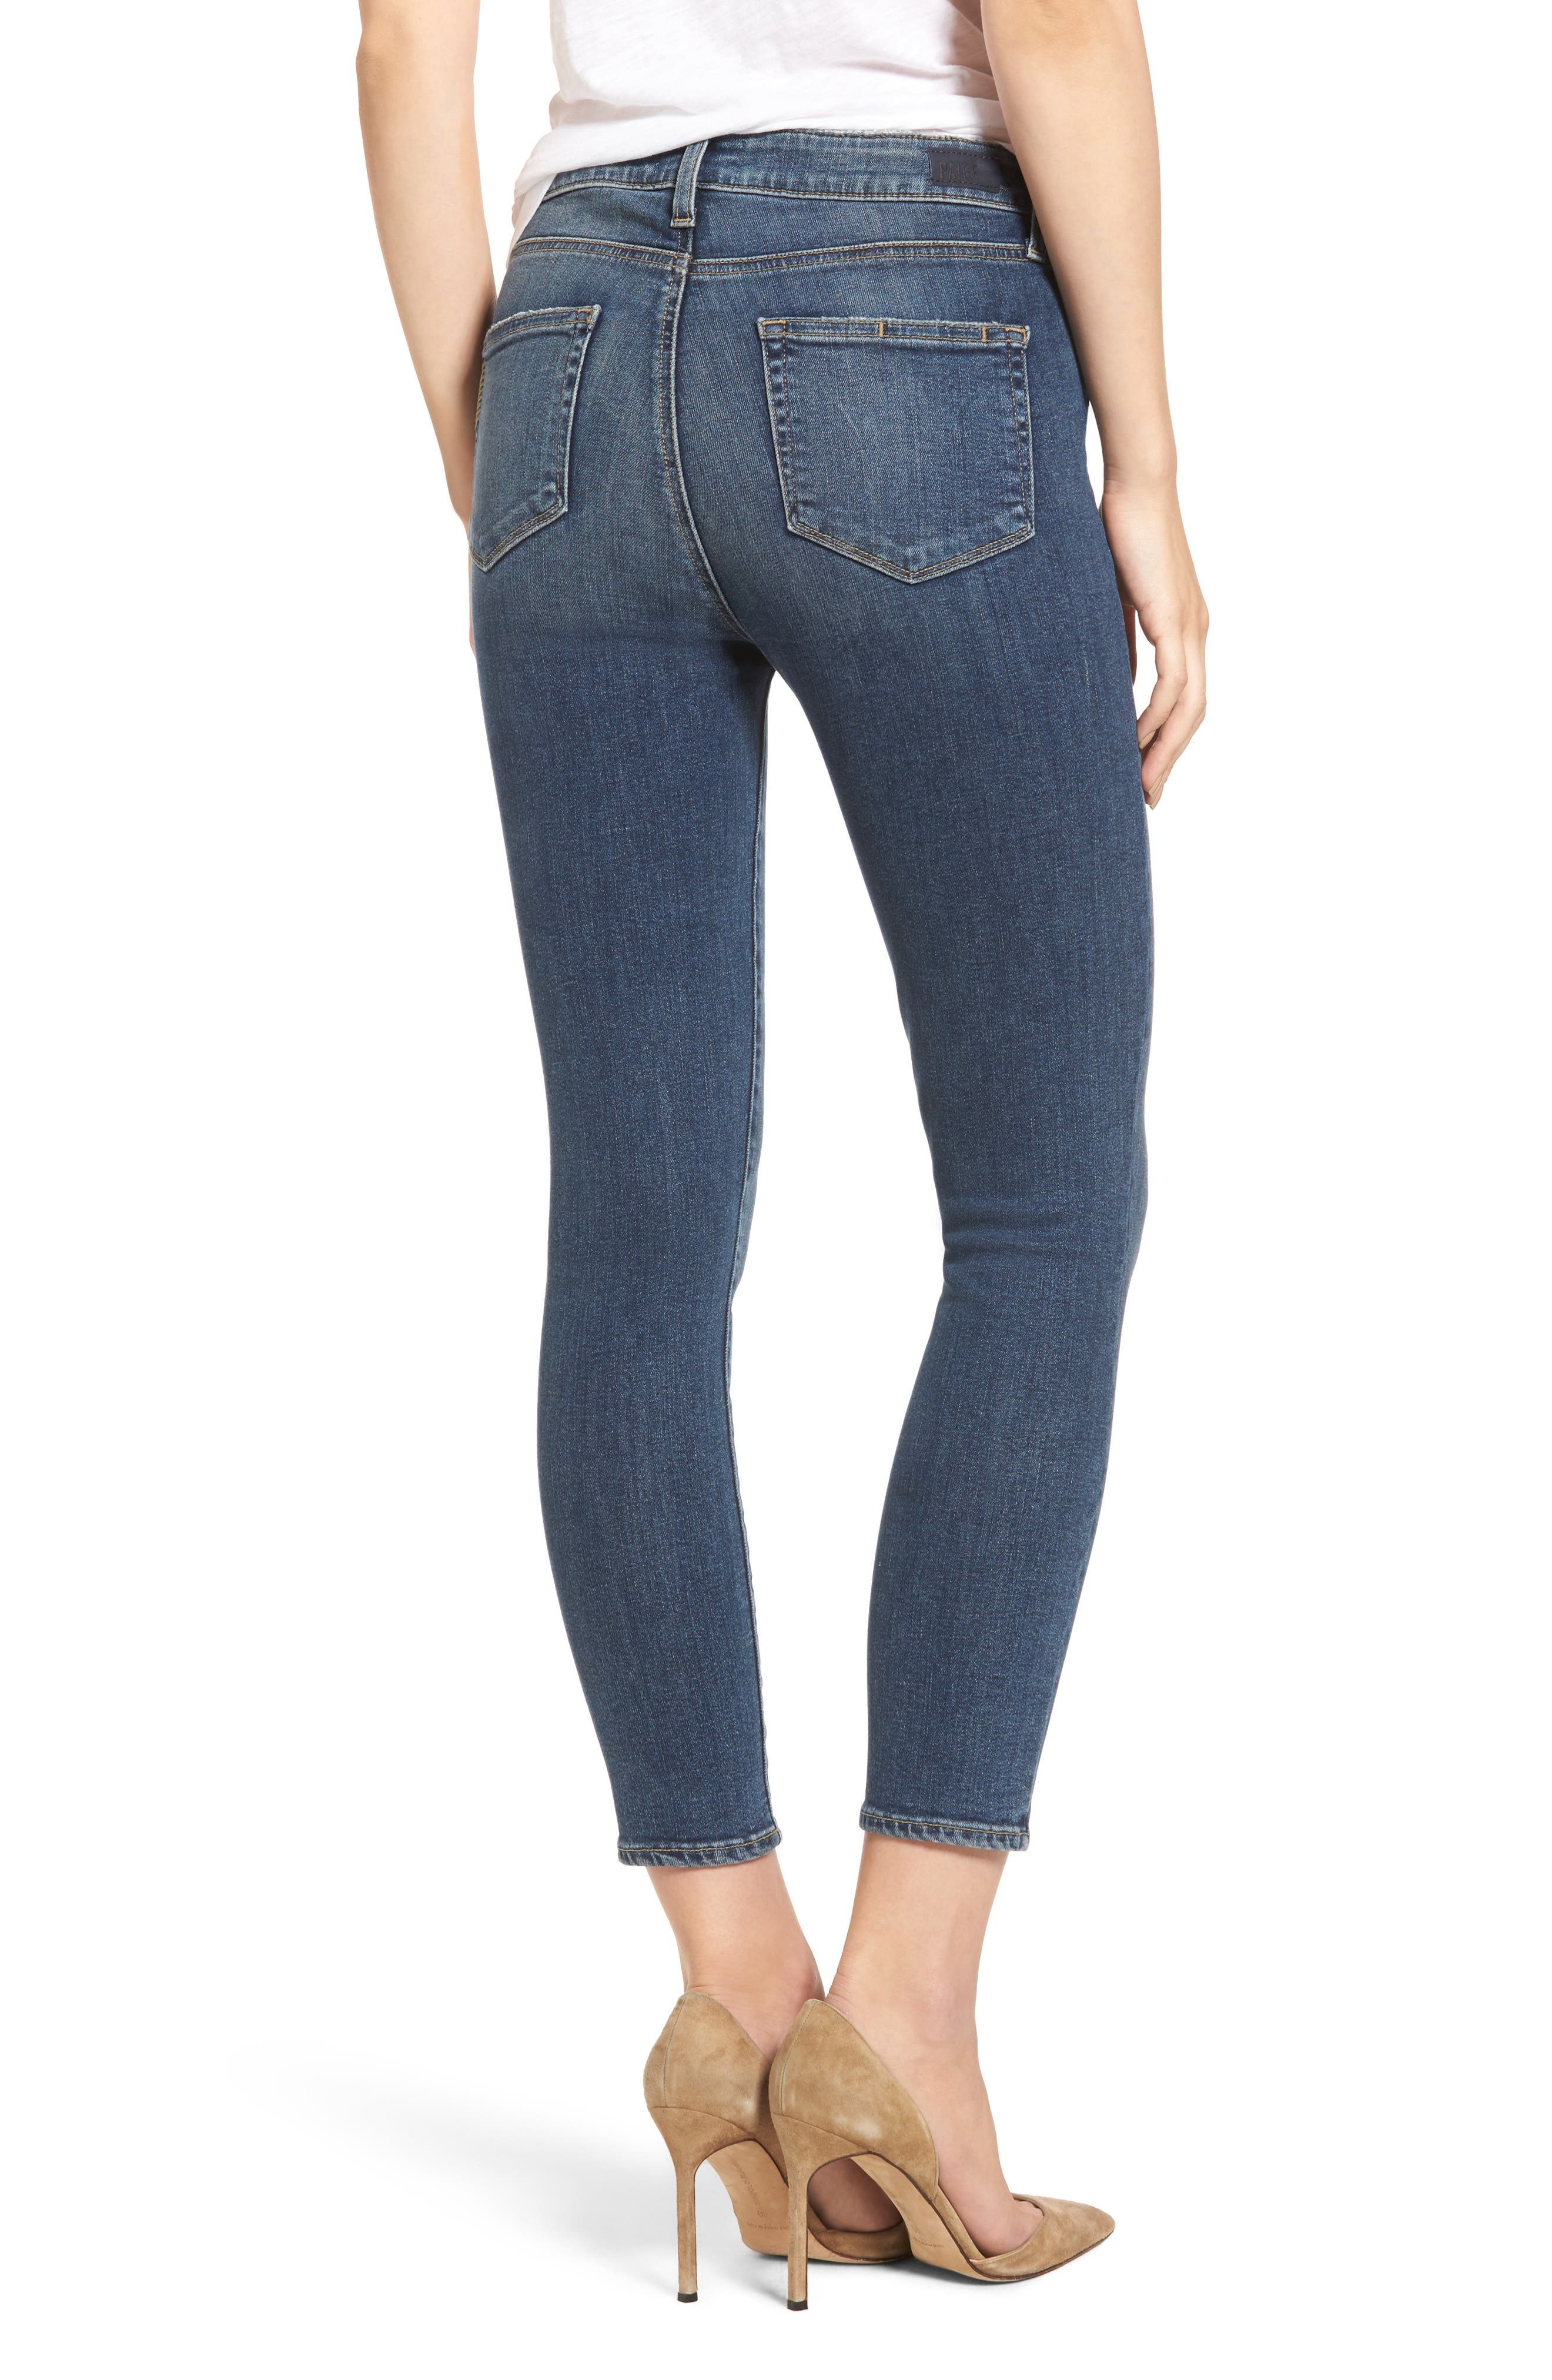 Hoxton High Waist Crop Skinny Jeans,                             Alternate thumbnail 3, color,                             400